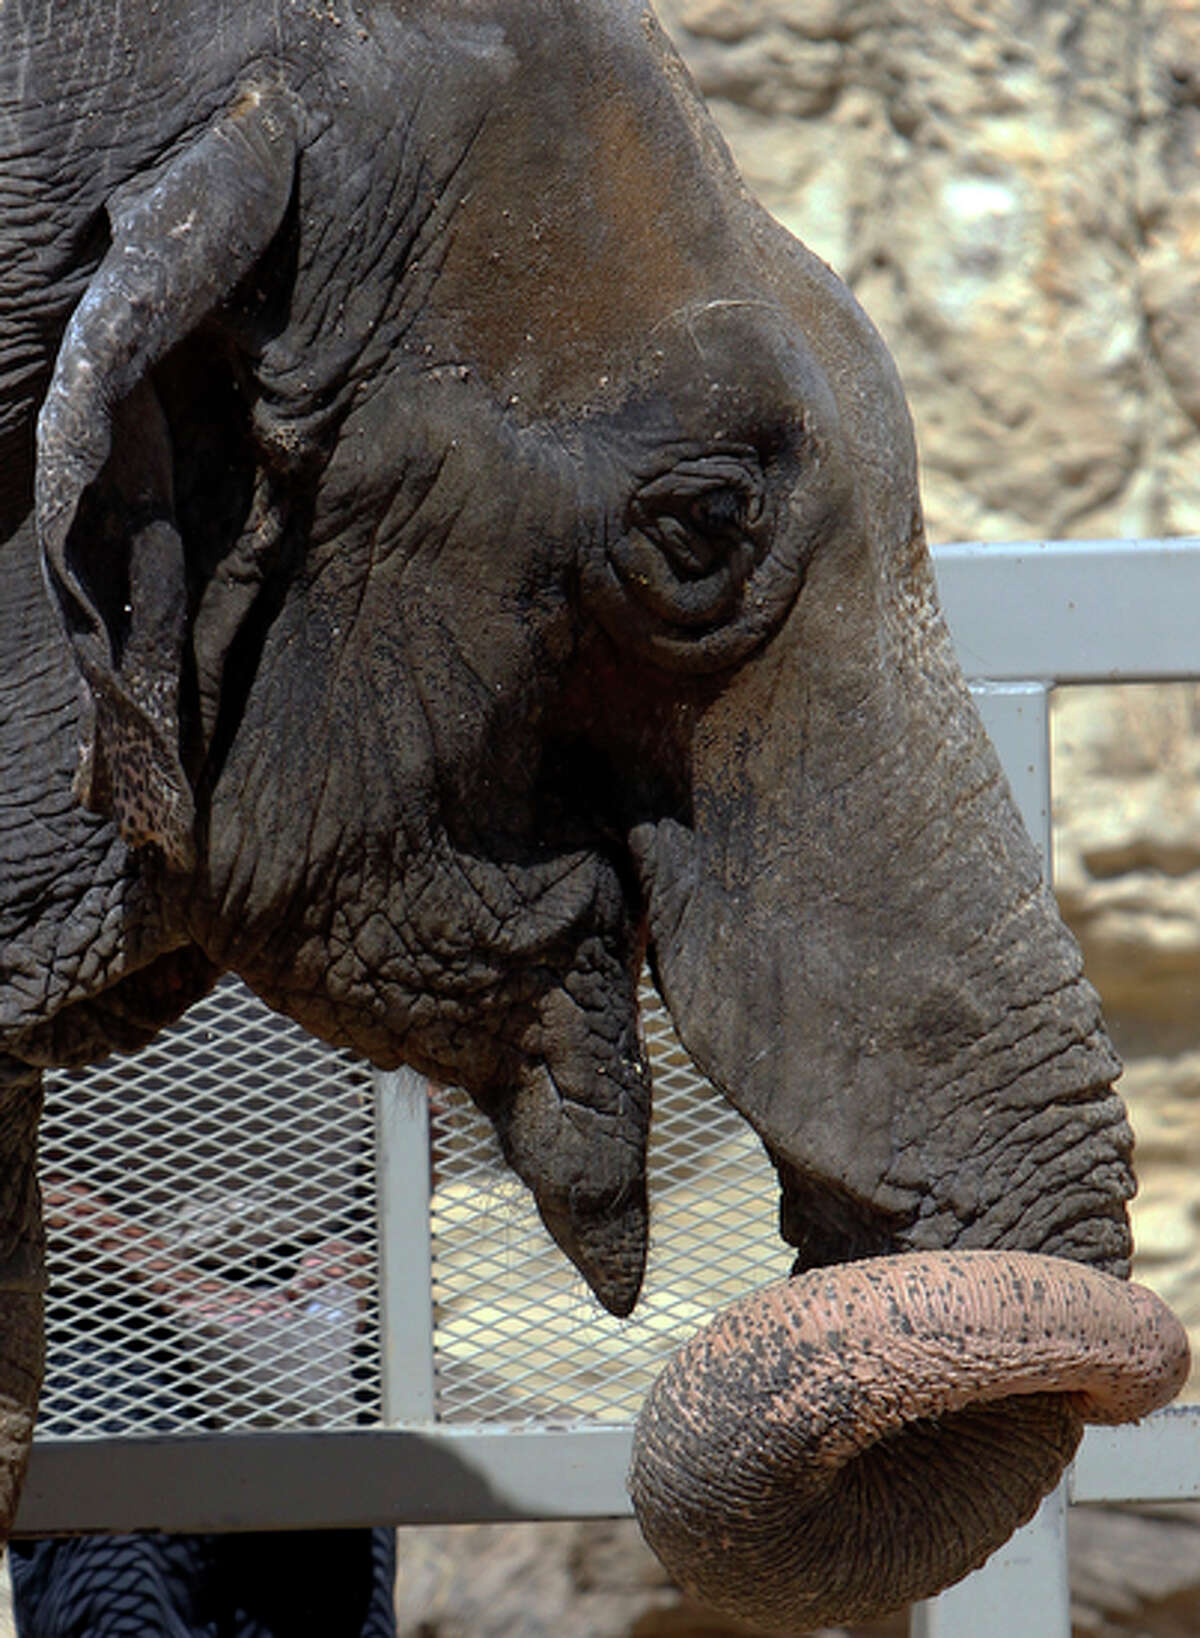 Boo, the Asian Elephant, will be eventually occupy the same space in the enclosure with companion elephant, Lucky.